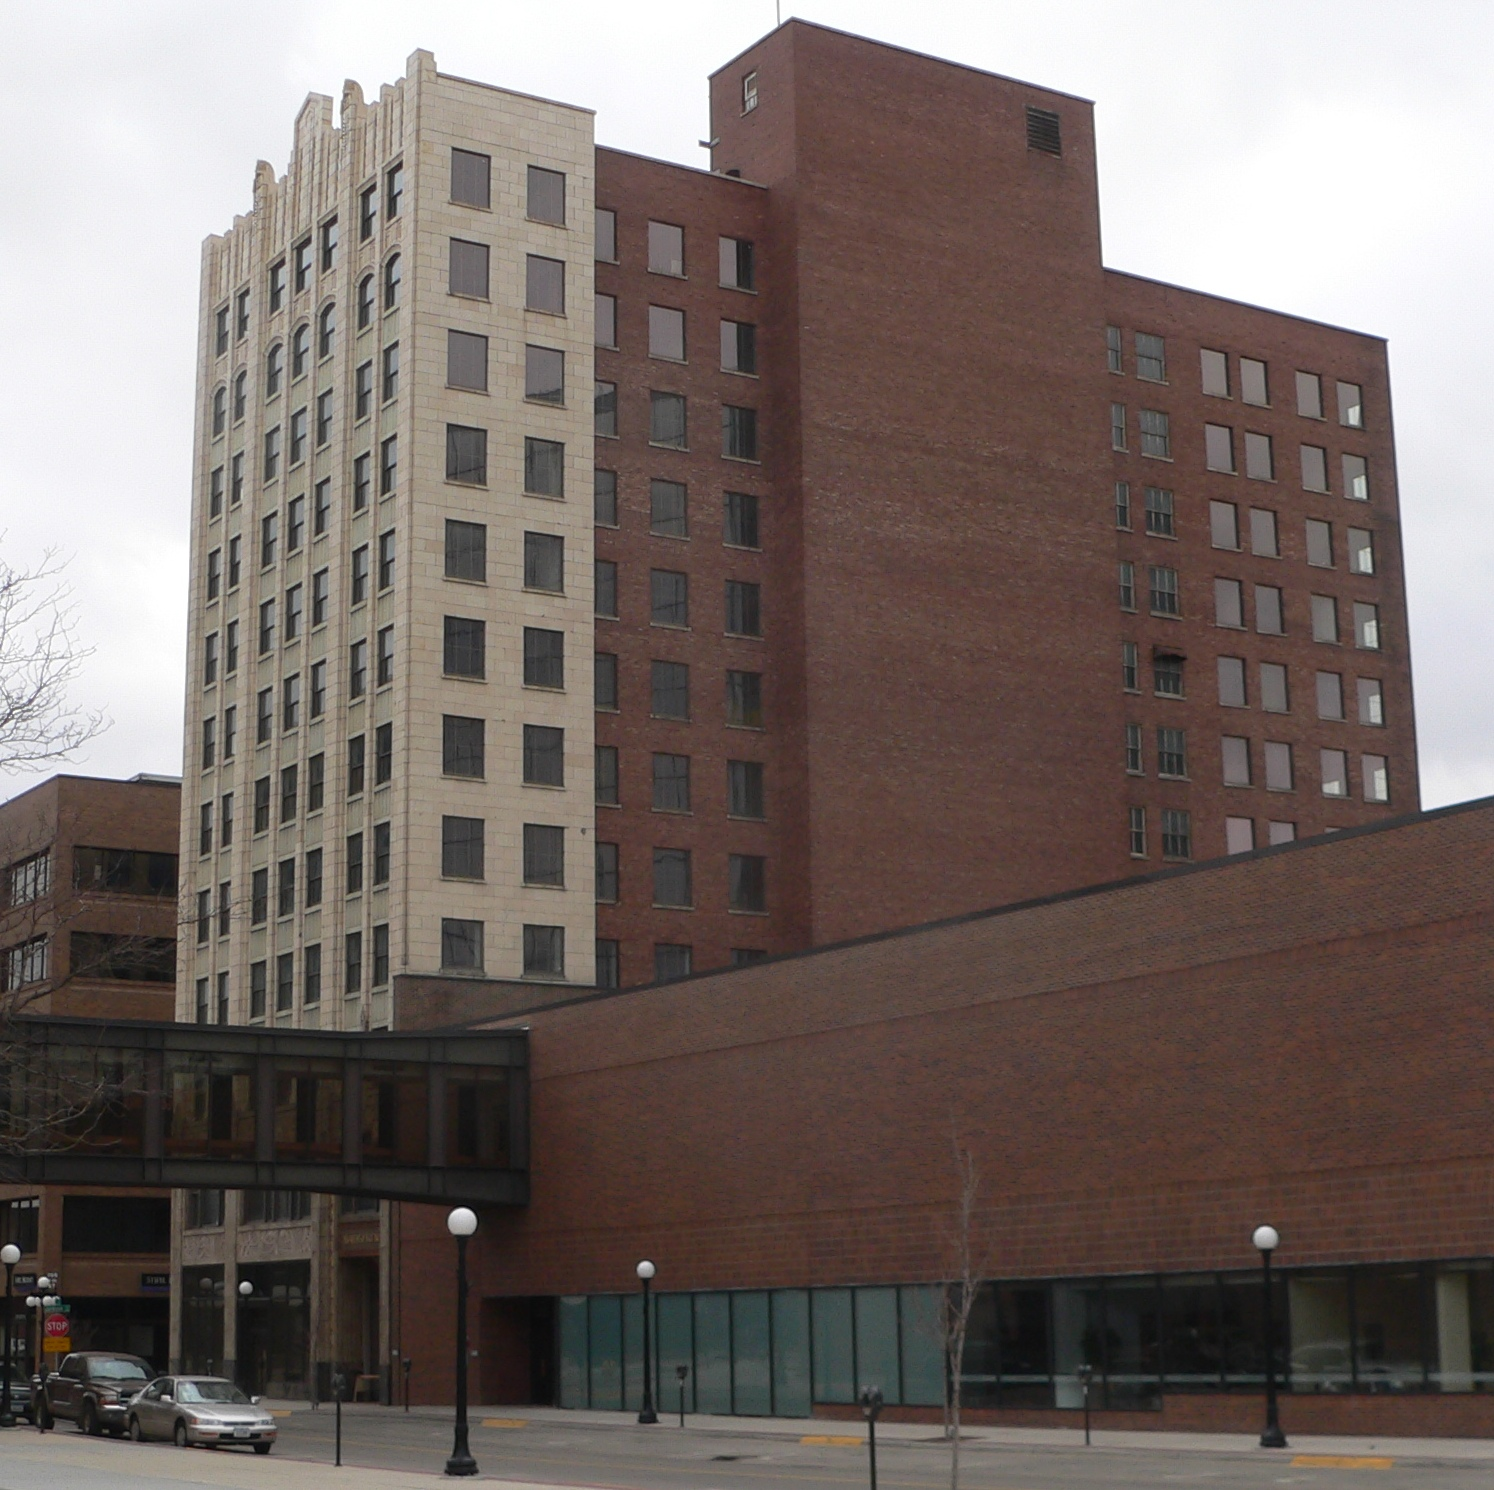 Badgerow Building, located at southwest corner of 4th and Jackson Streets in Sioux City, Iowa; seen from the northwest